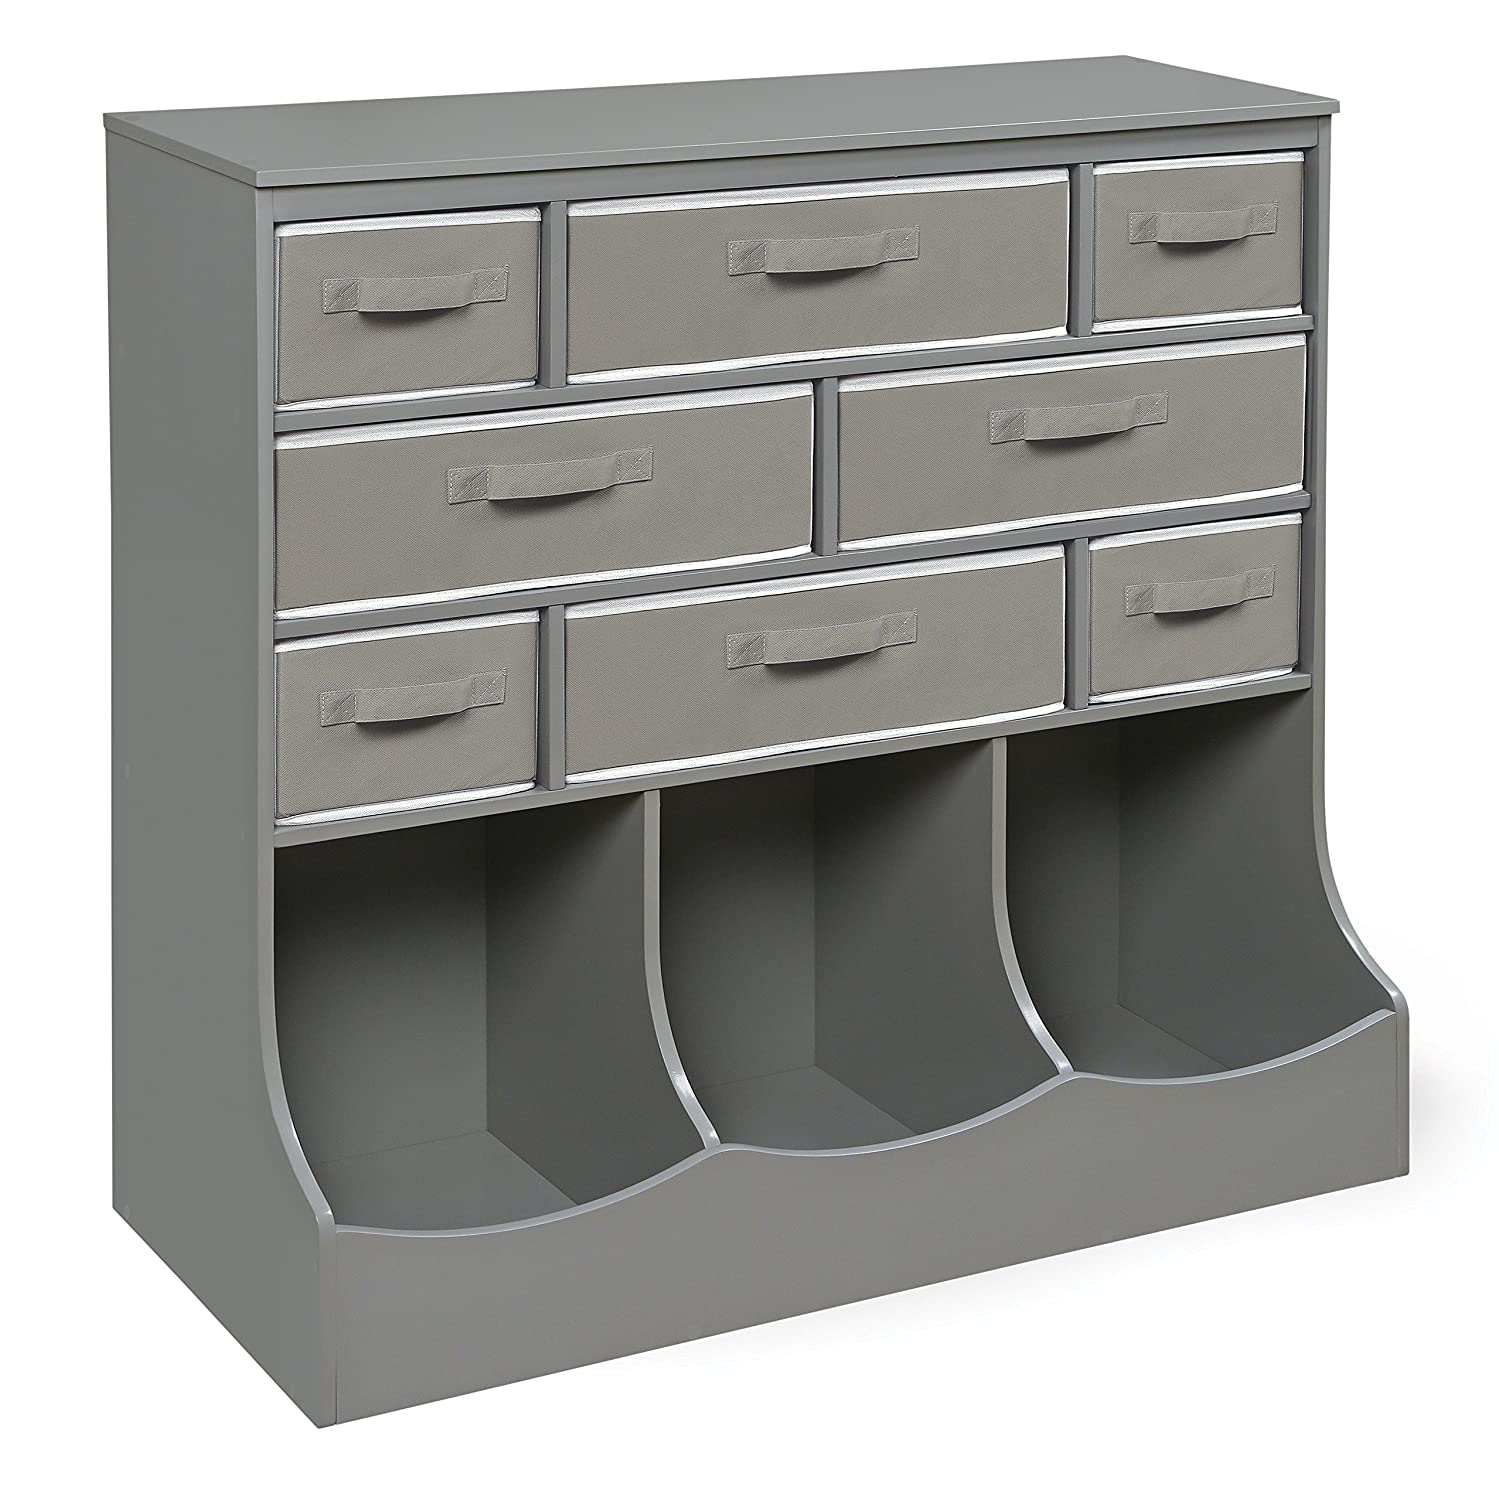 Storage Station 8 Cubby 3 Bin Organizing Unit with Reversible Baskets